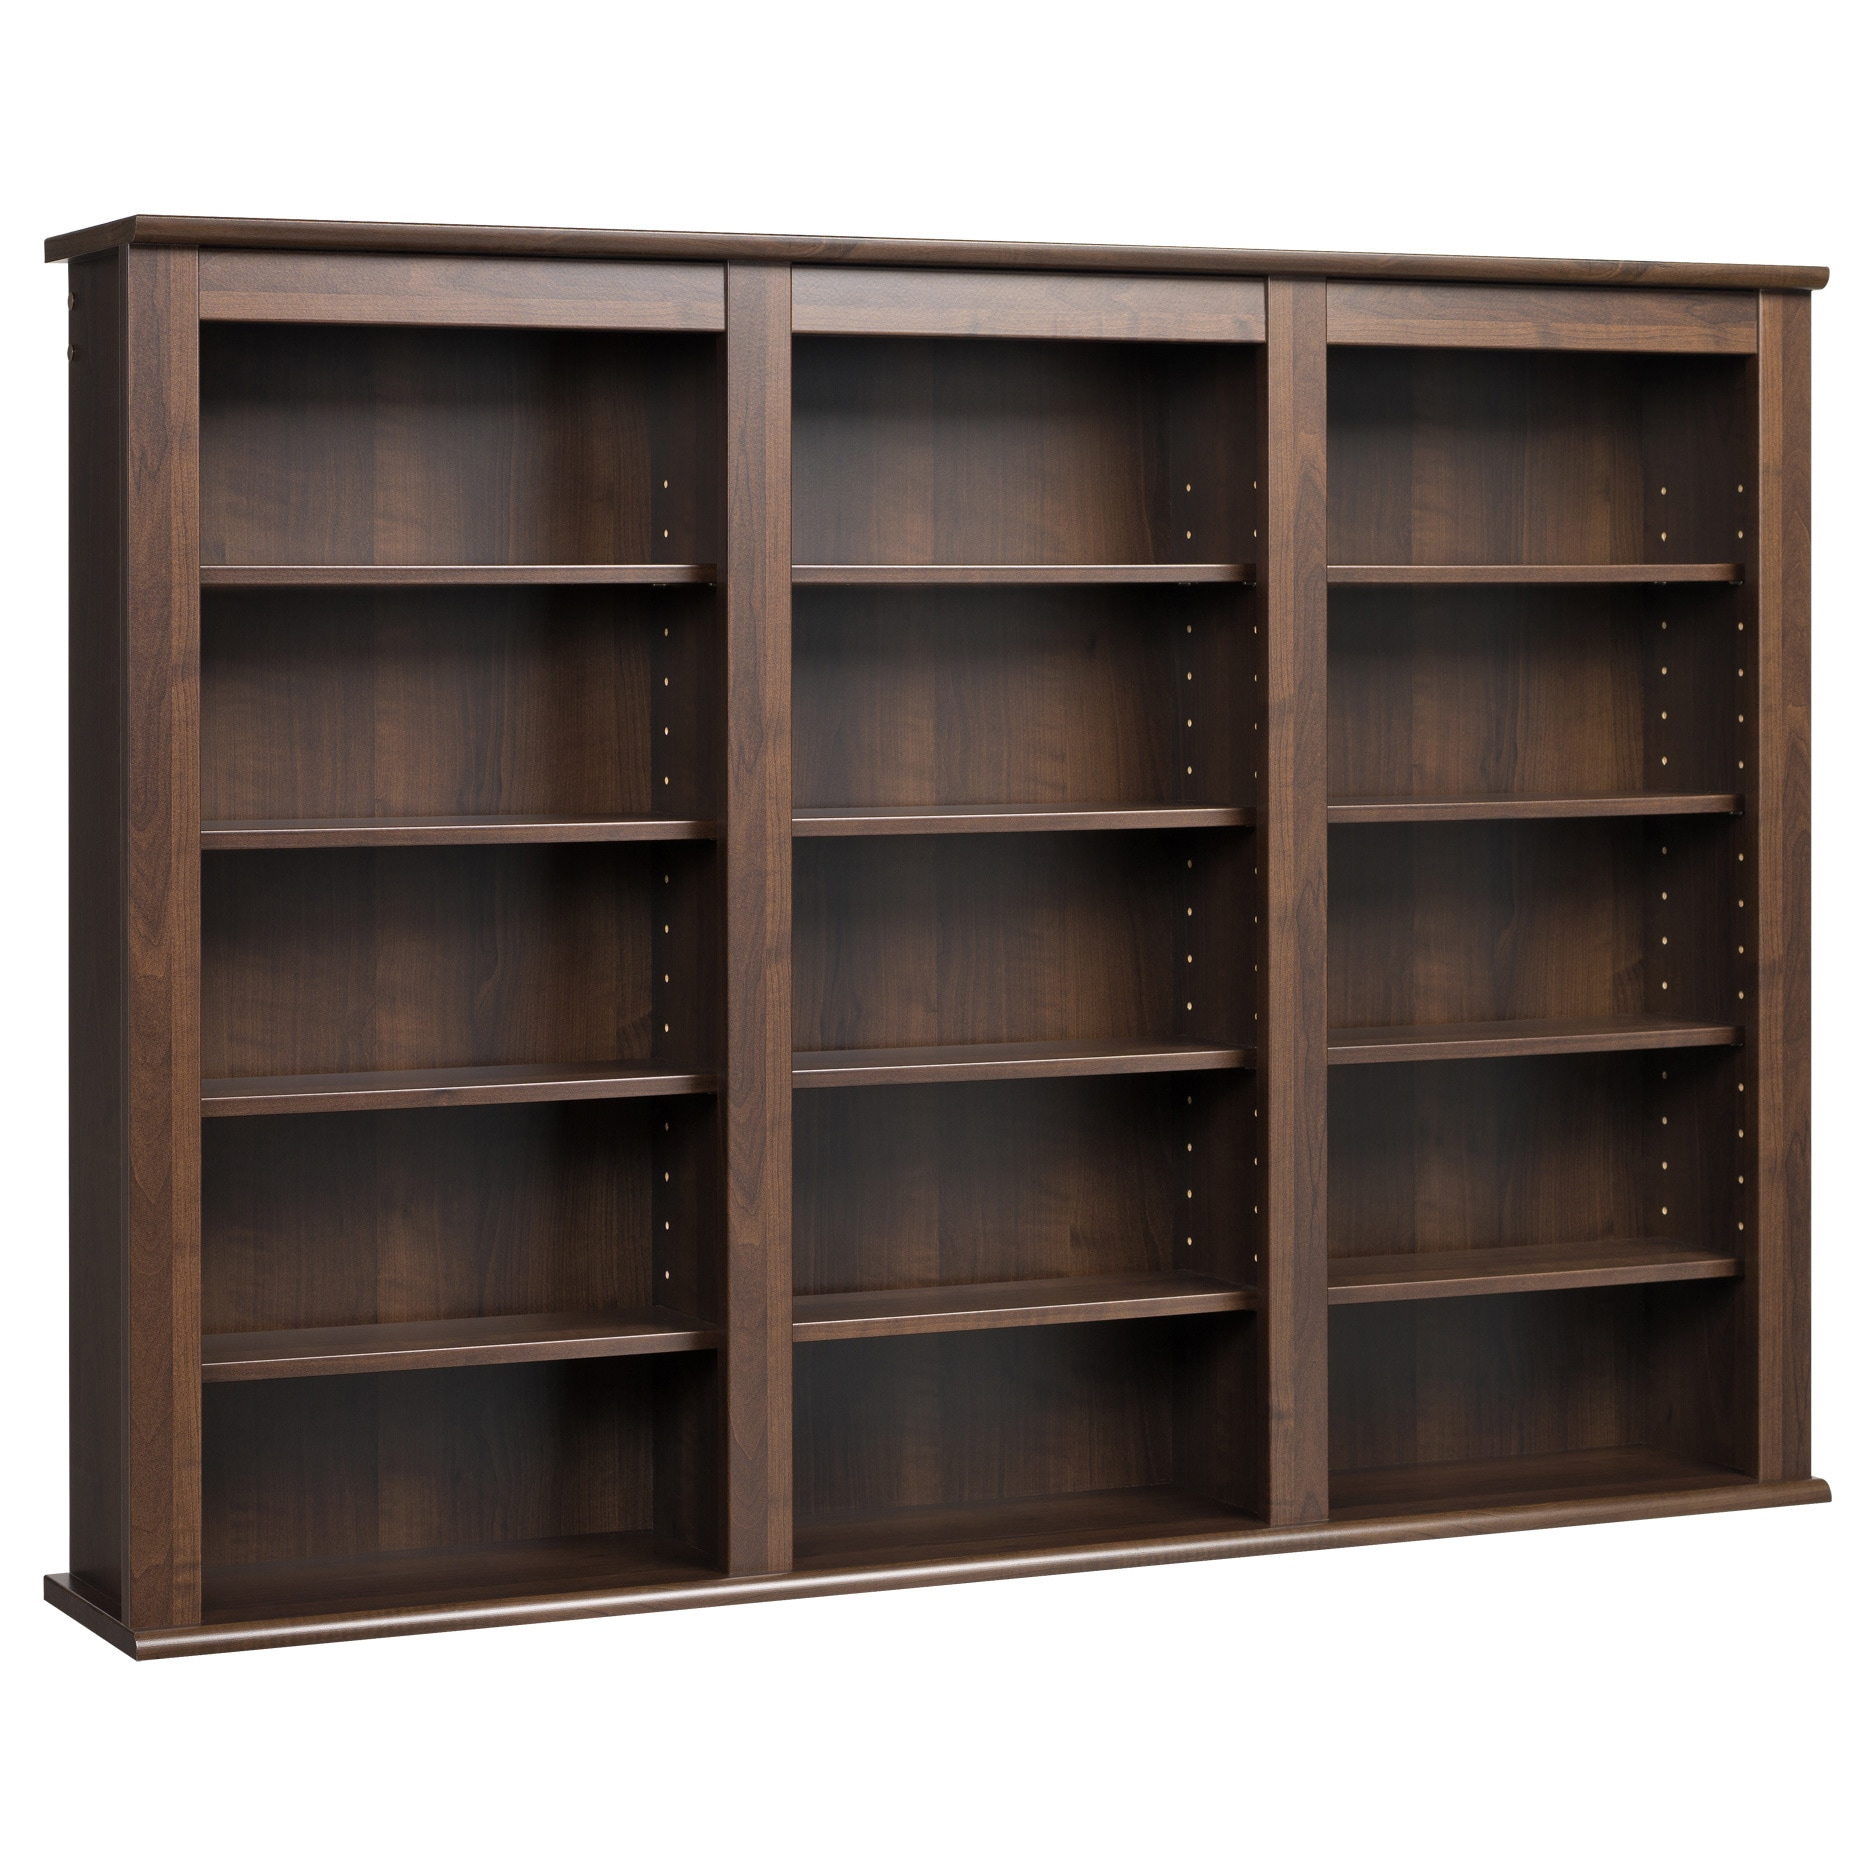 Shop Everett Espresso Wall -hanging Media Storage Cabinet - Free Shipping Today - Overstock.com - 5978105  sc 1 st  Overstock.com & Shop Everett Espresso Wall -hanging Media Storage Cabinet - Free ...